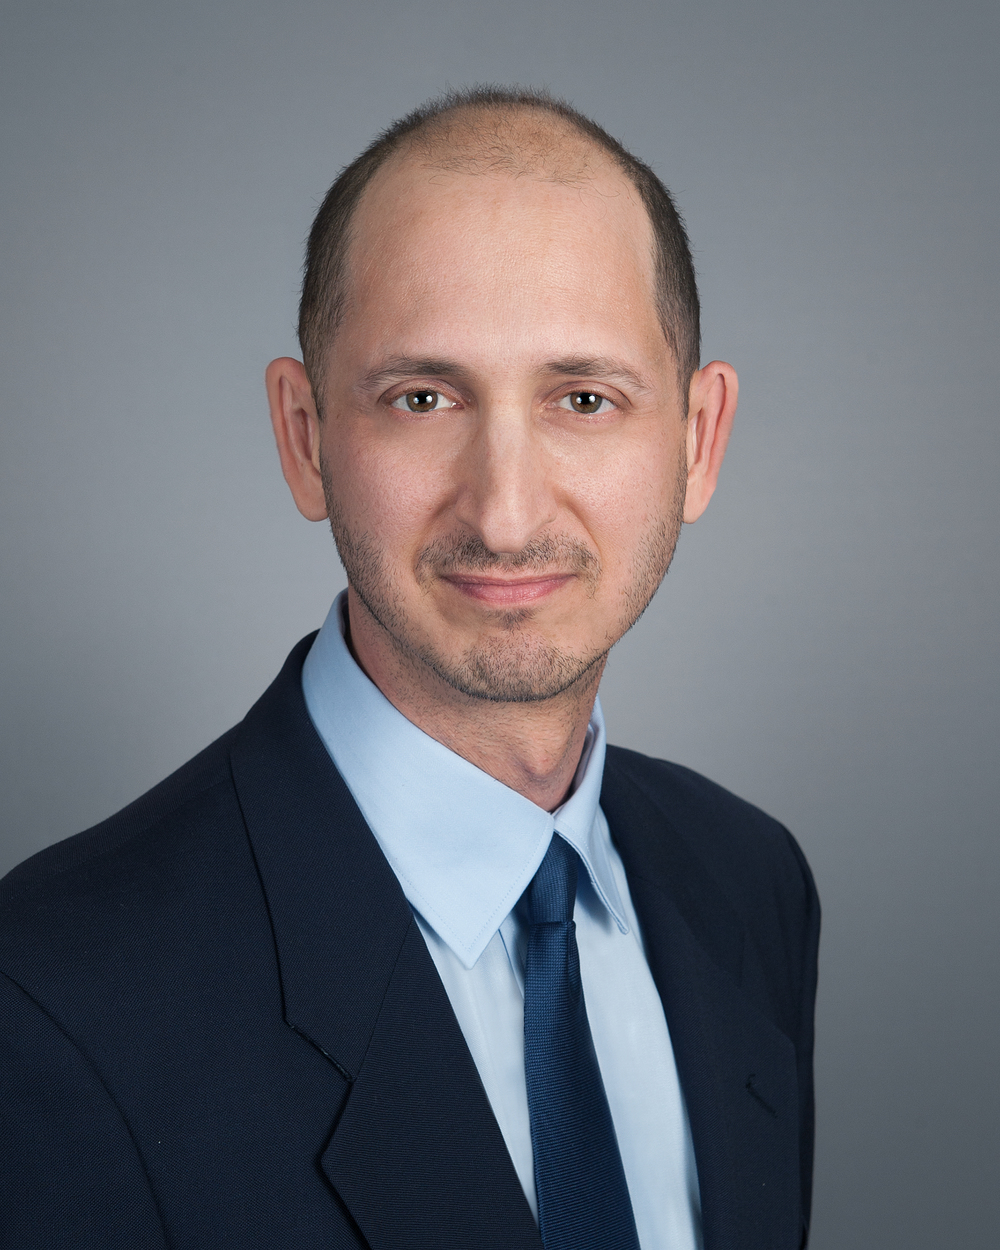 Jason Kahn.headshot.jpg